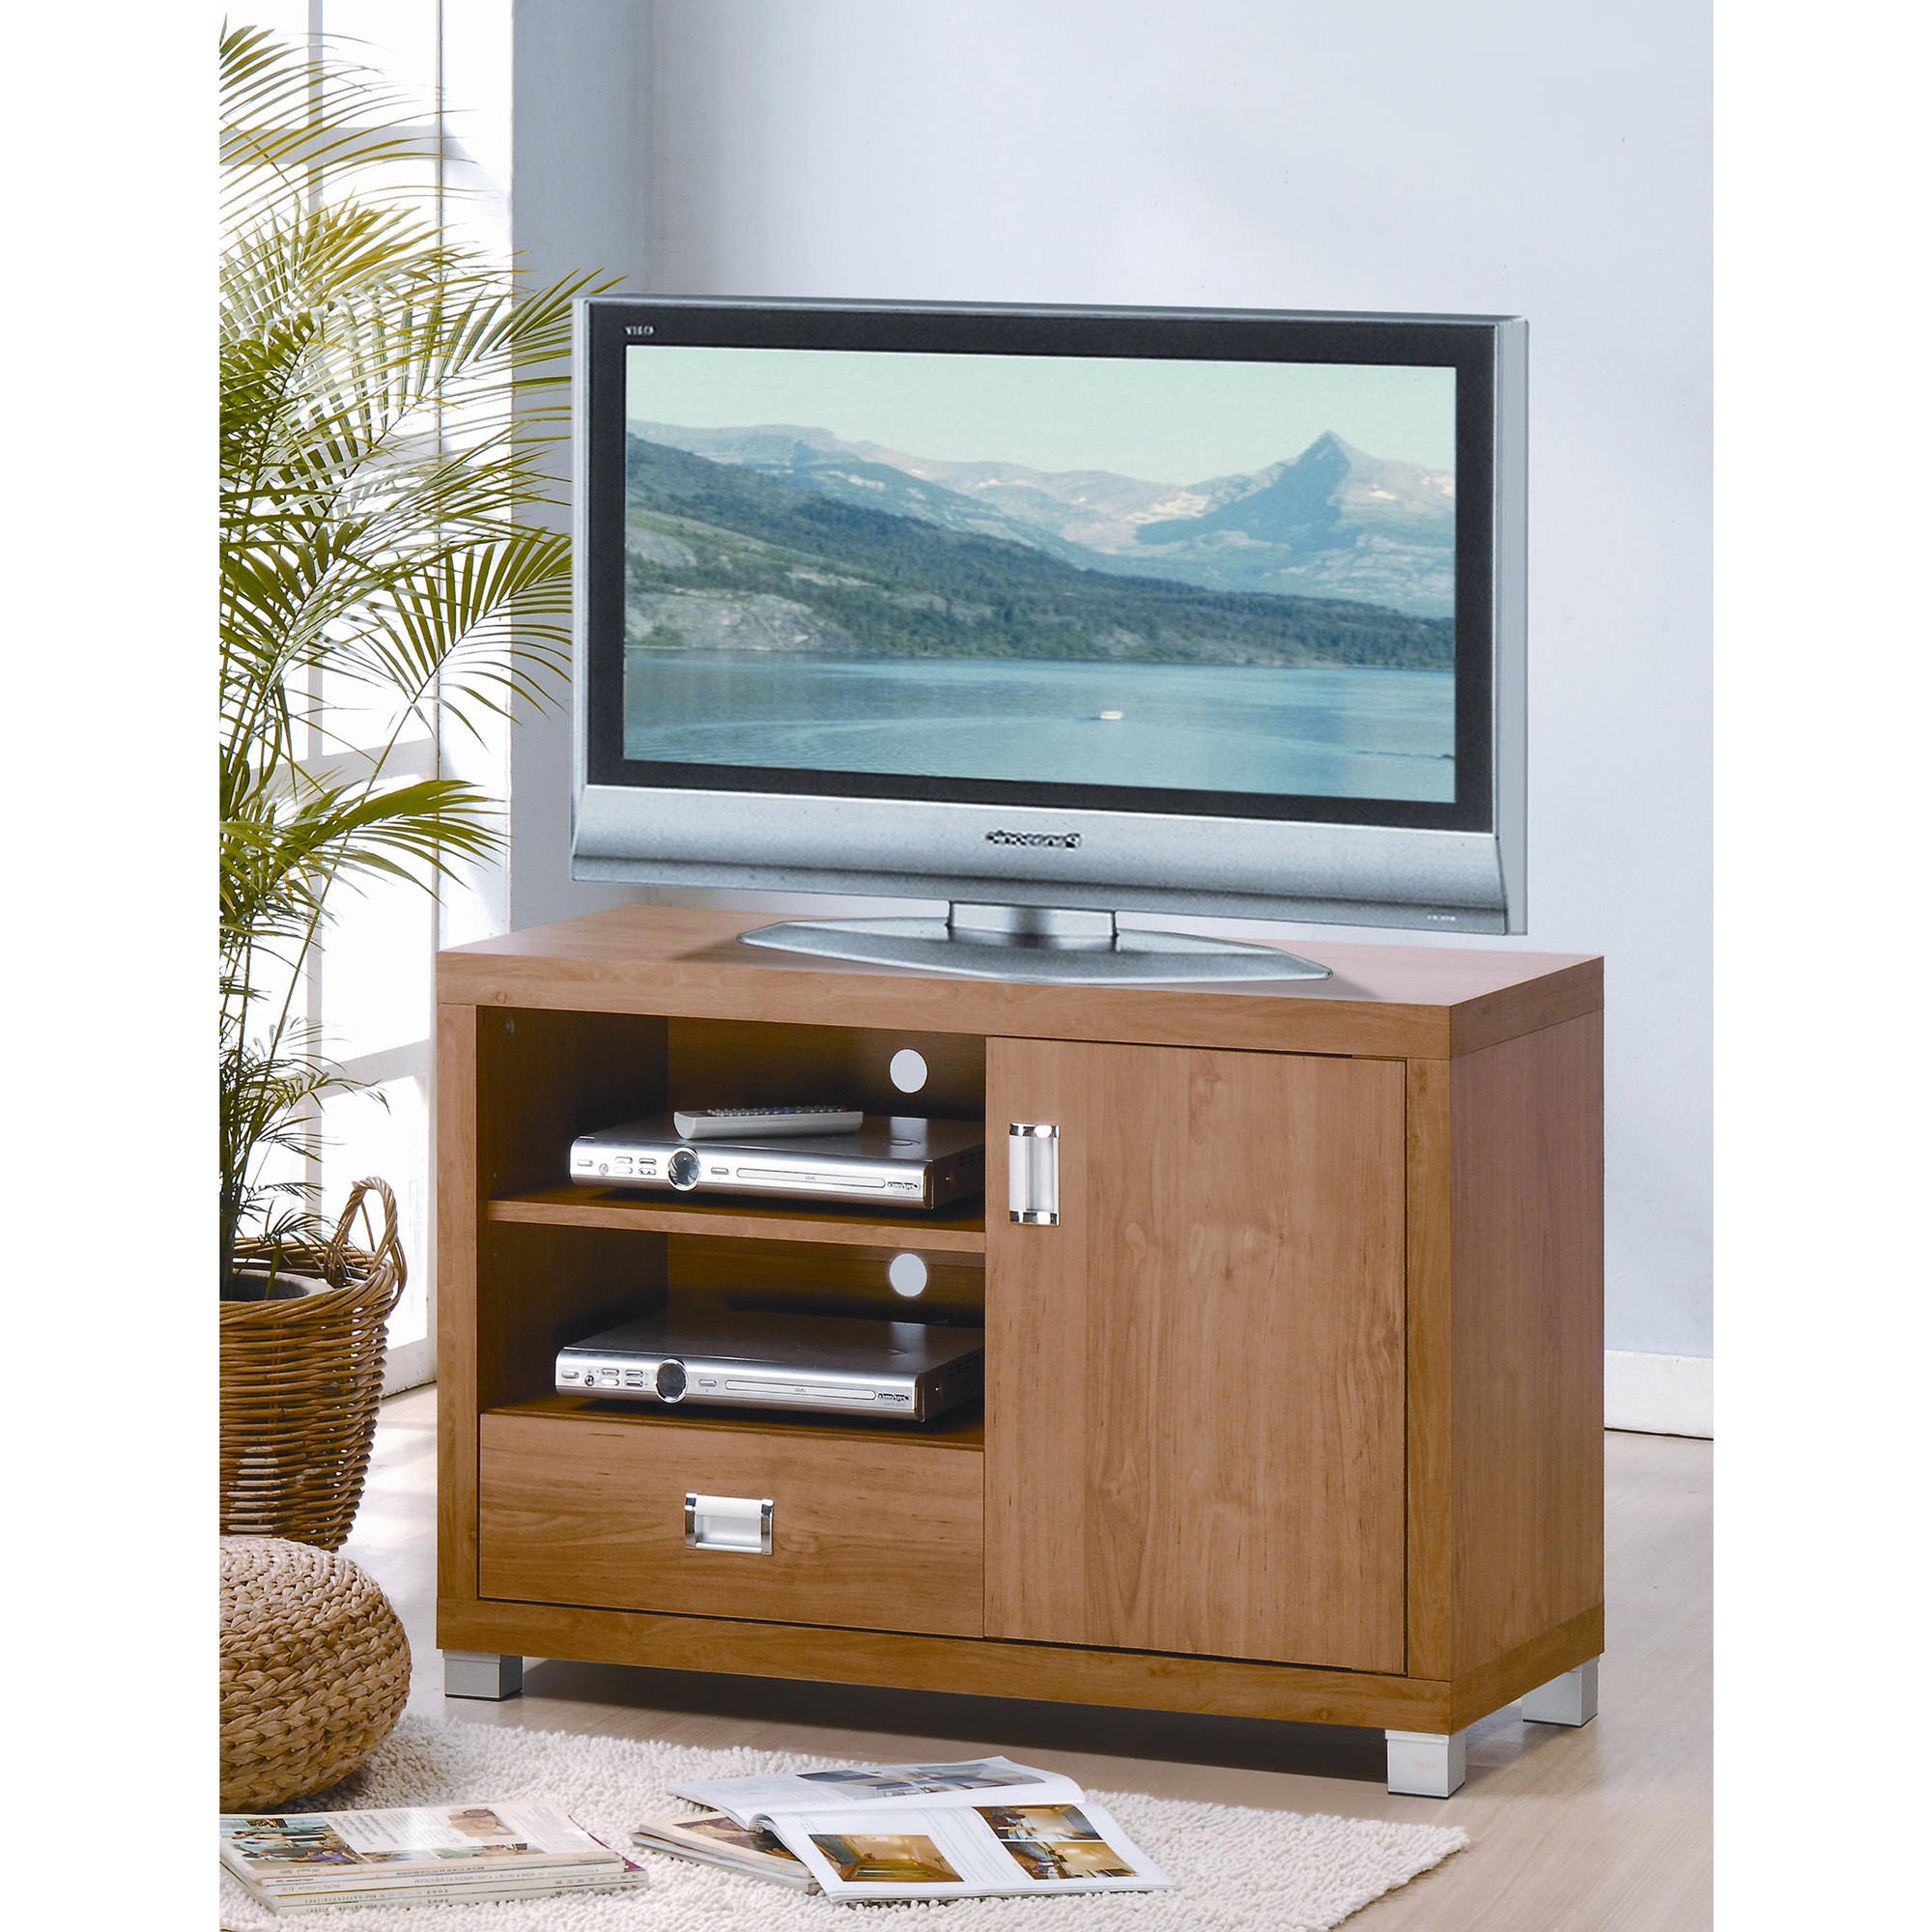 "Techni Mobili Tv Stand For Tvs Up To 38"" With Storage, Maple (rta Within Fashionable Tv Cabinets With Storage (View 9 of 20)"